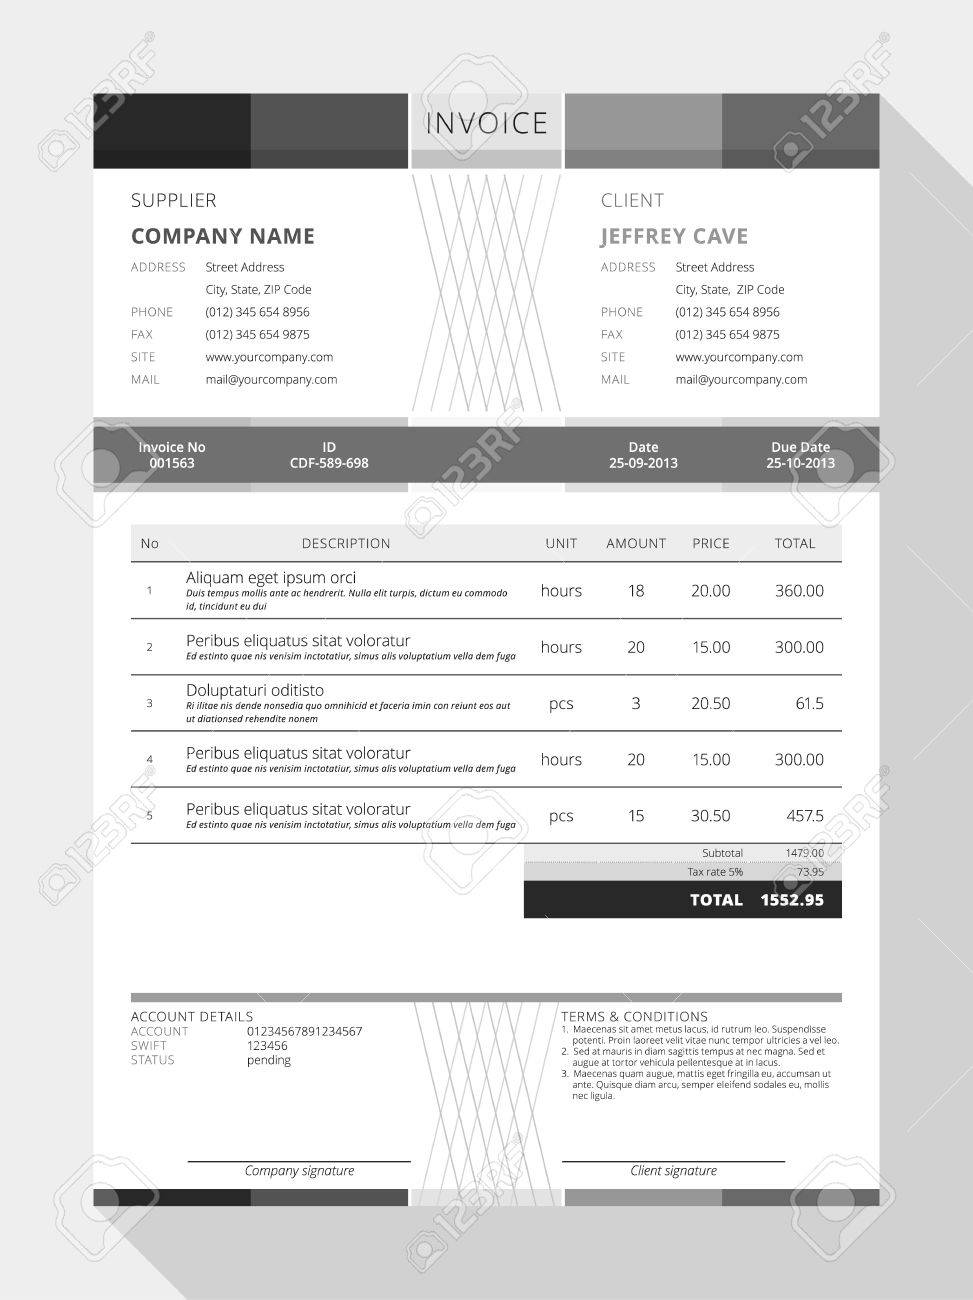 Howcanigettallerus  Nice Design An Invoice  Professional Graphic Design Invoice  With Exciting Vector Customizable Invoice Form Template Design Vector   Design An Invoice With Adorable Pay Invoice Online Also Soho Invoice In Addition Invoice Google And Invoice On Cars As Well As What An Invoice Additionally Invoice Template Libreoffice From Happytomco With Howcanigettallerus  Exciting Design An Invoice  Professional Graphic Design Invoice  With Adorable Vector Customizable Invoice Form Template Design Vector   Design An Invoice And Nice Pay Invoice Online Also Soho Invoice In Addition Invoice Google From Happytomco